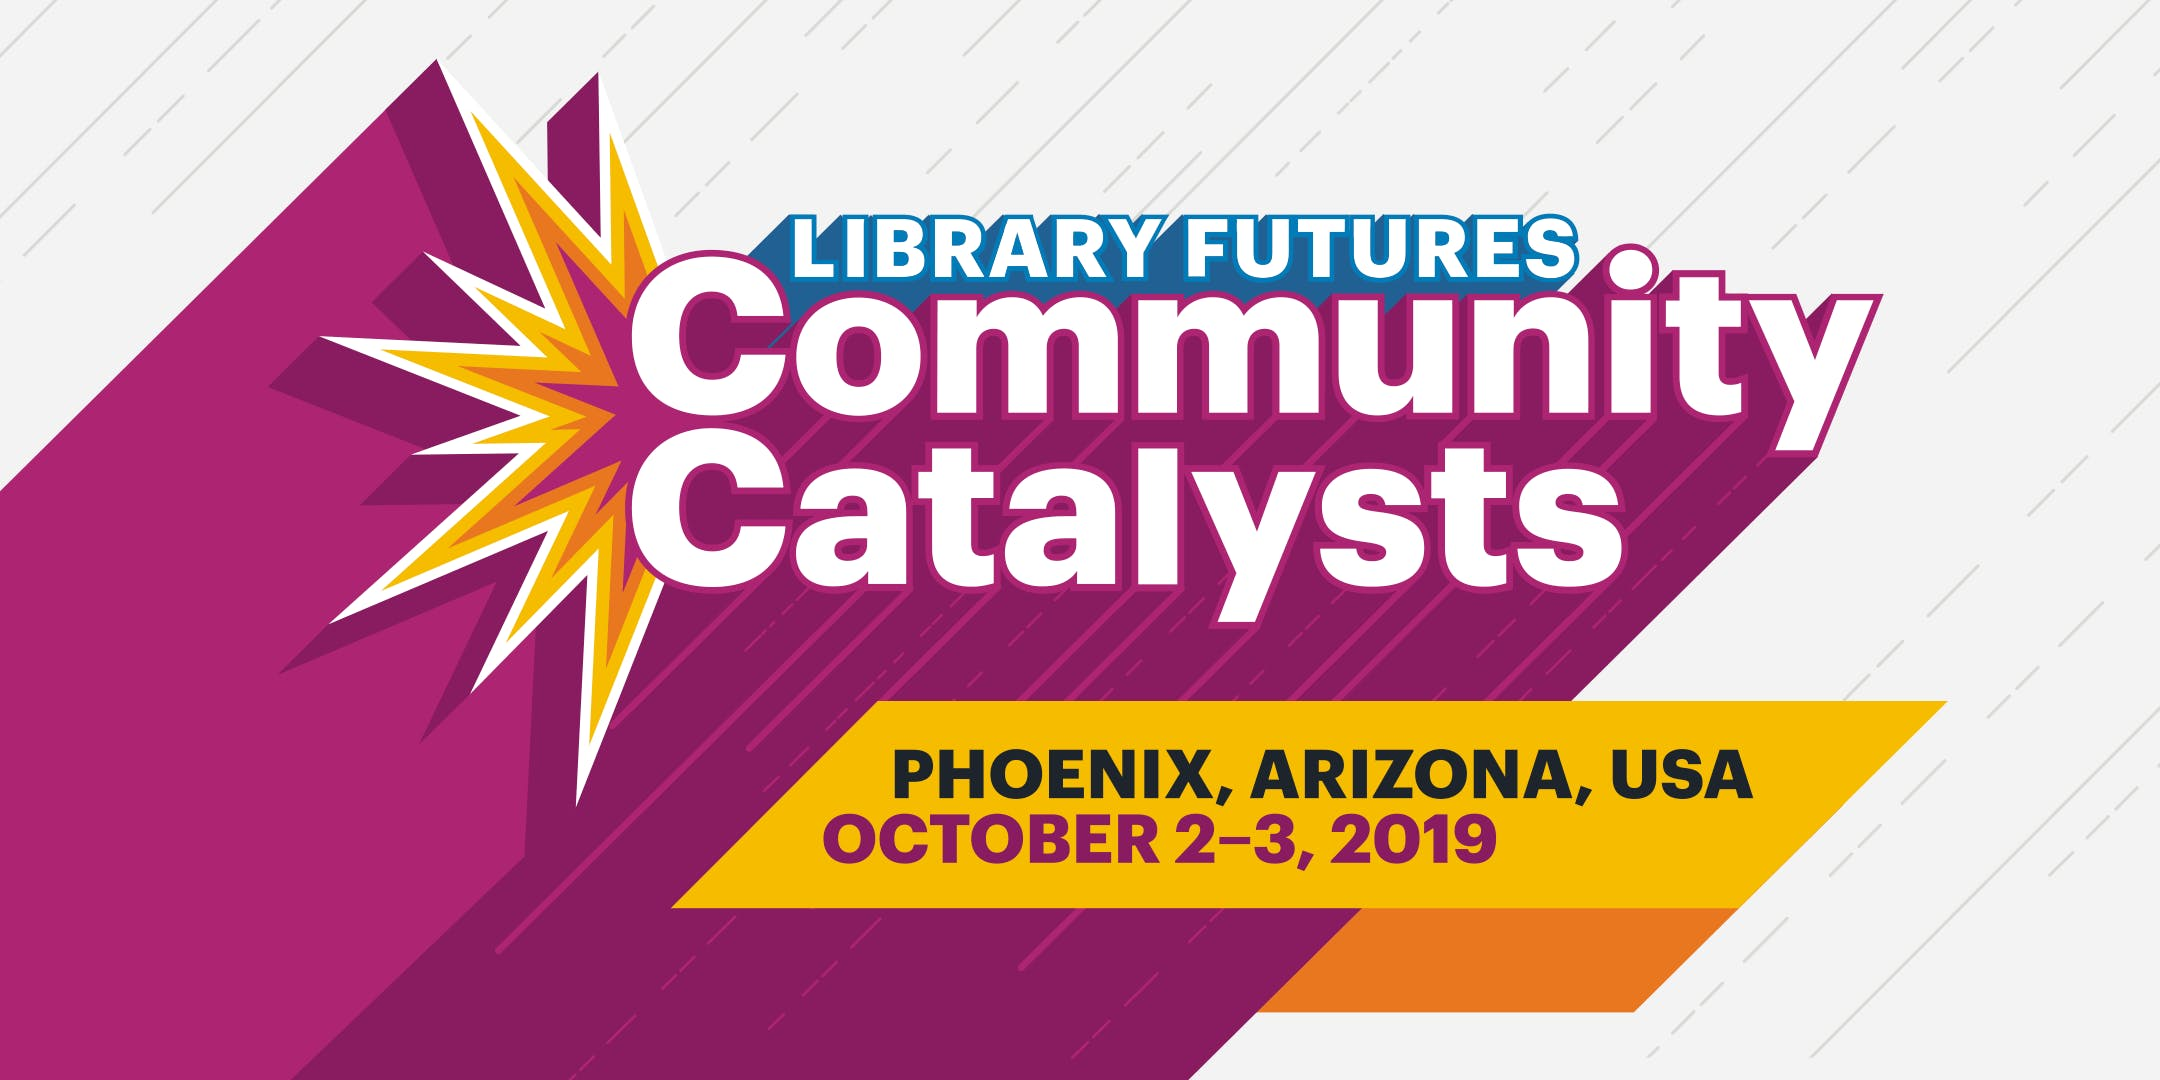 OCLC Library Futures Conference